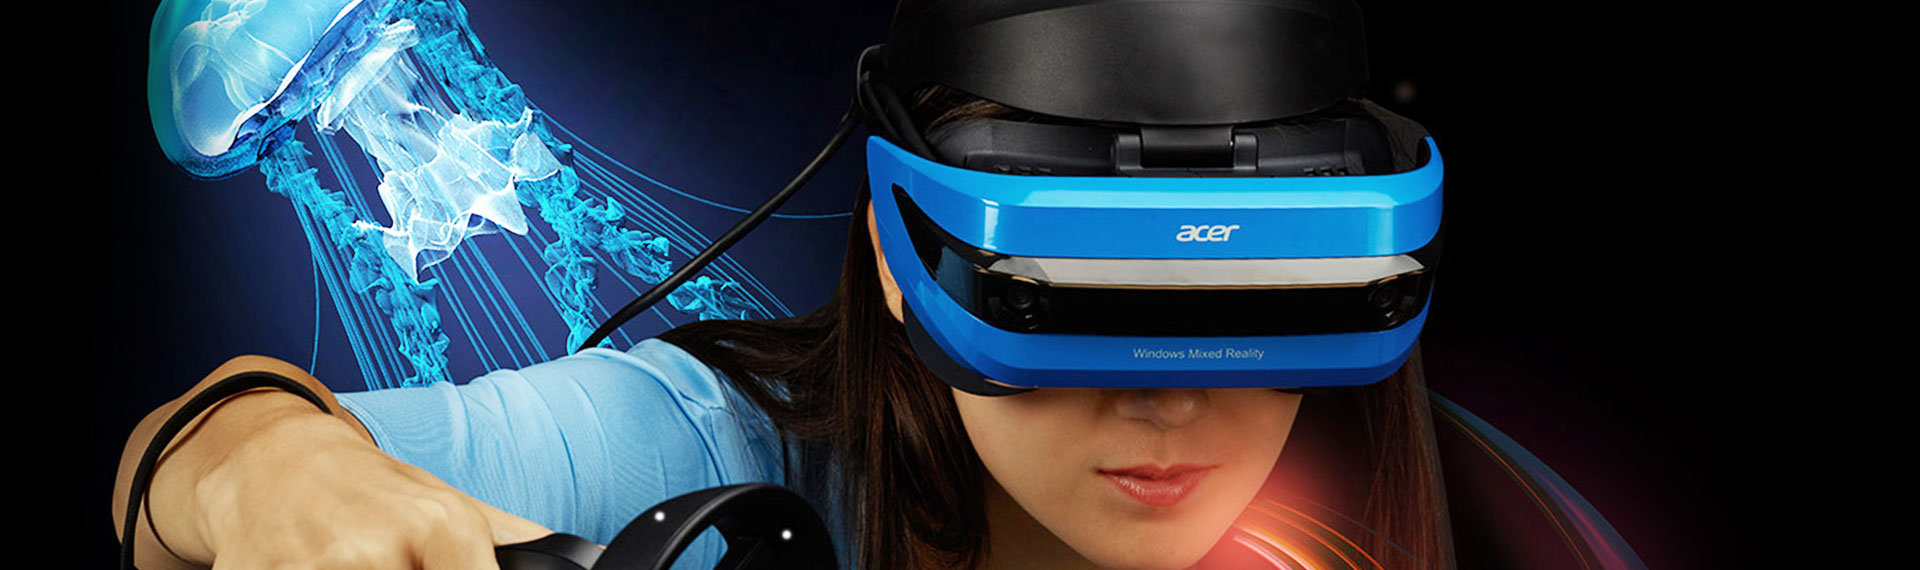 Pengalaman Virtual Tanpa Batas dengan Acer Windows Mixed Reality